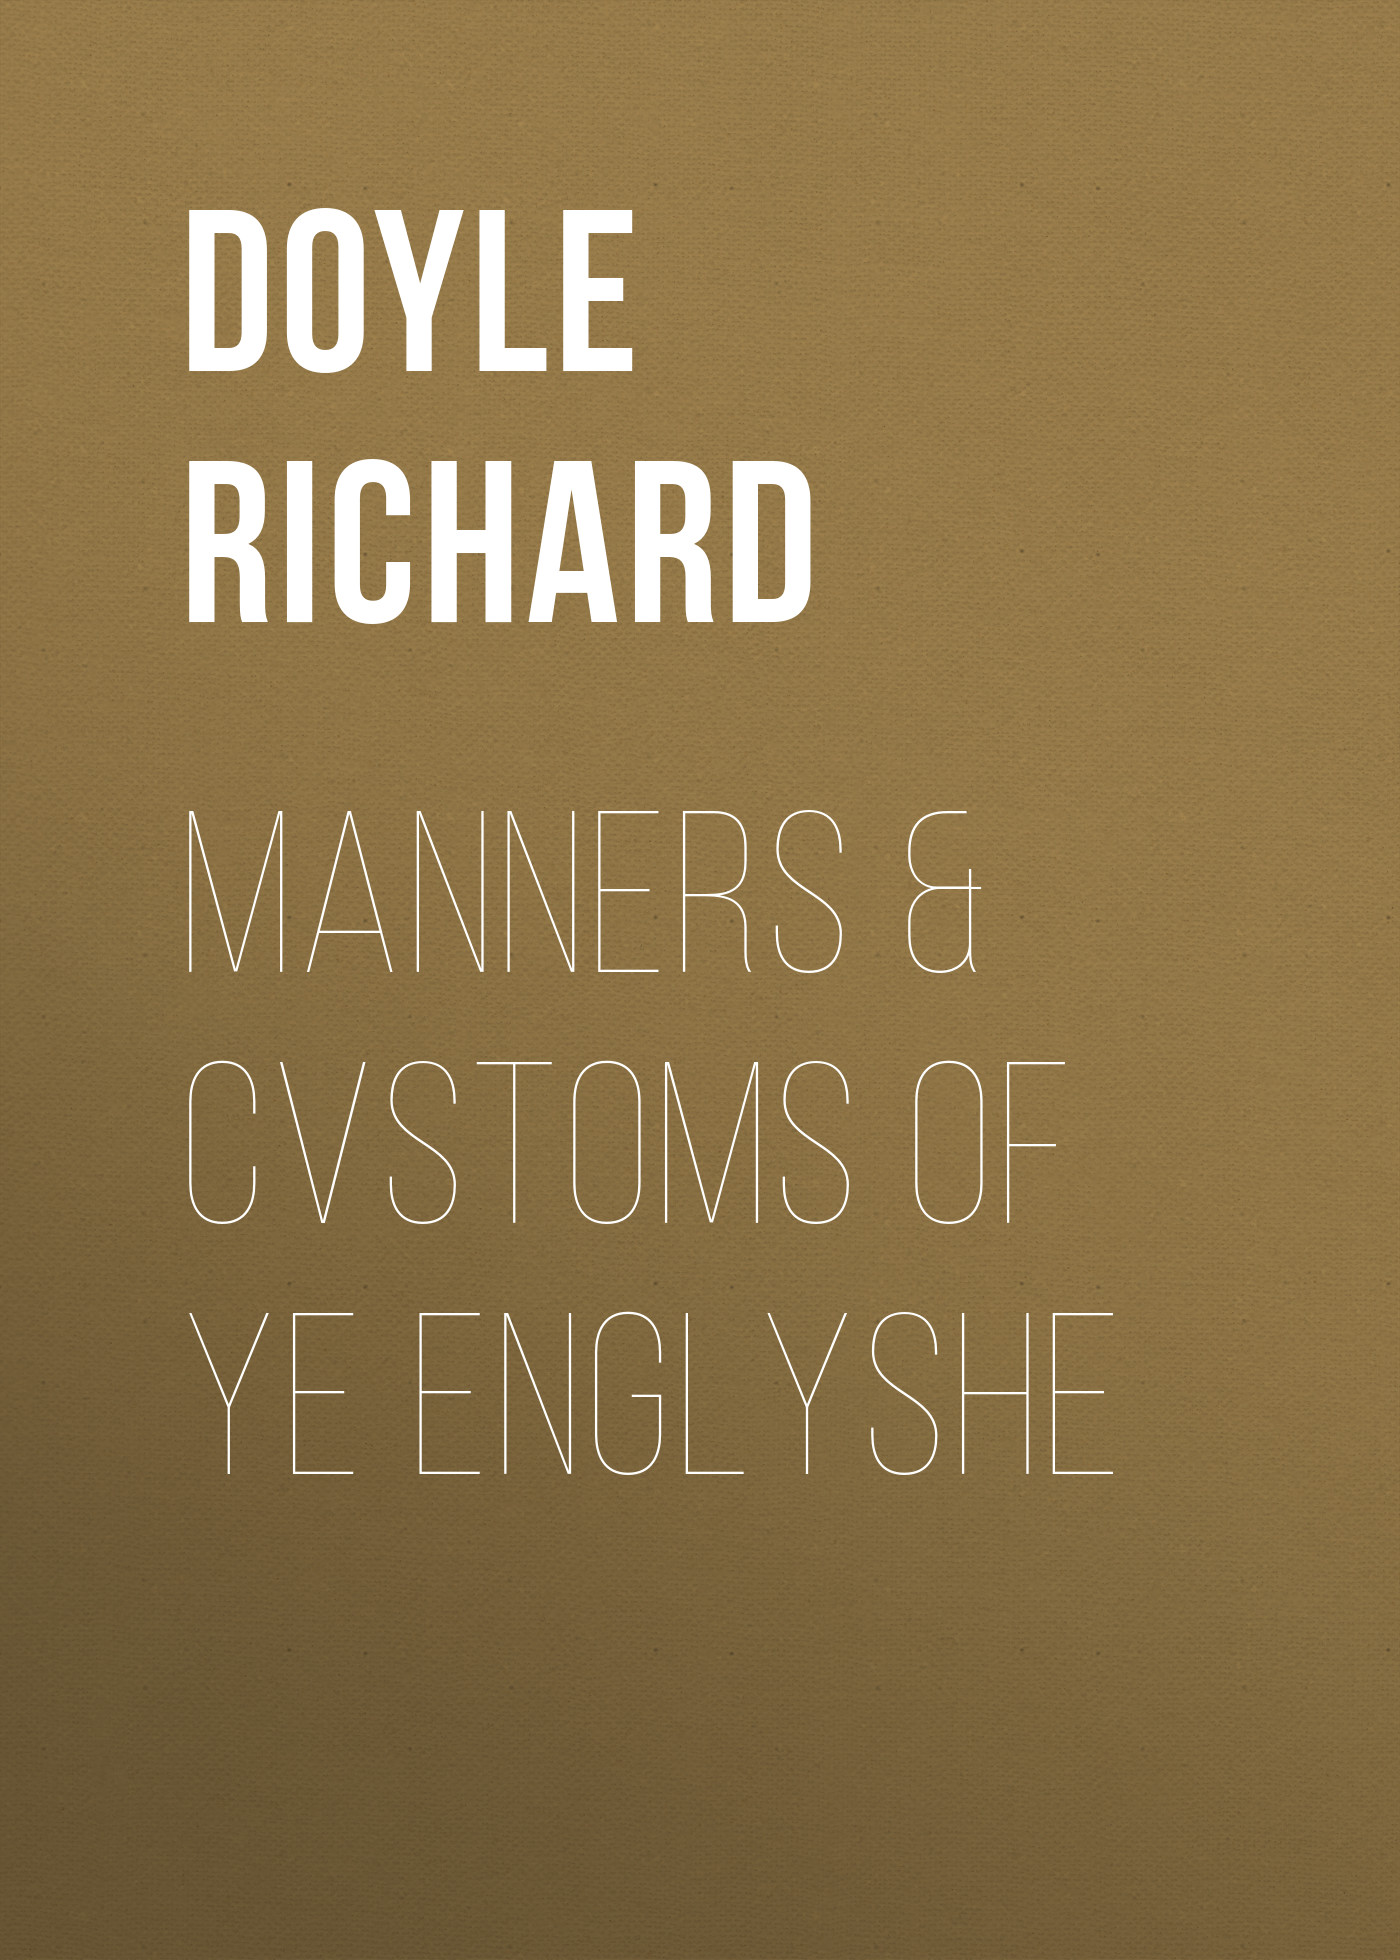 Doyle Richard Manners & Cvstoms of ye Englyshe